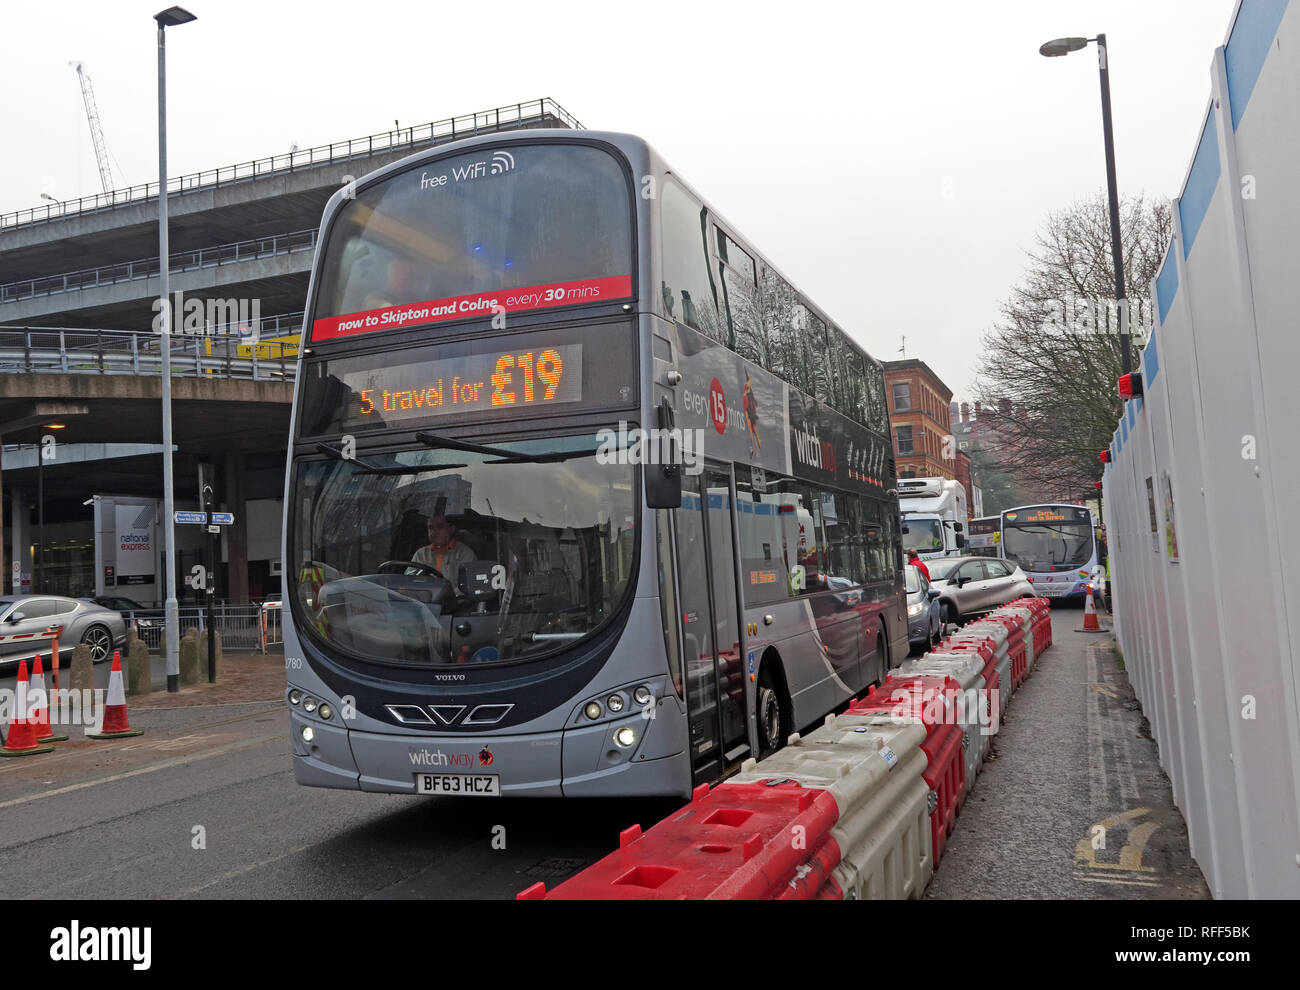 The Witchway X43 bus, Manchester to Burnley express, TransDev Lancashire Bus, Chorlton Street, Manchester, England, UK, M1 3JF - Stock Image